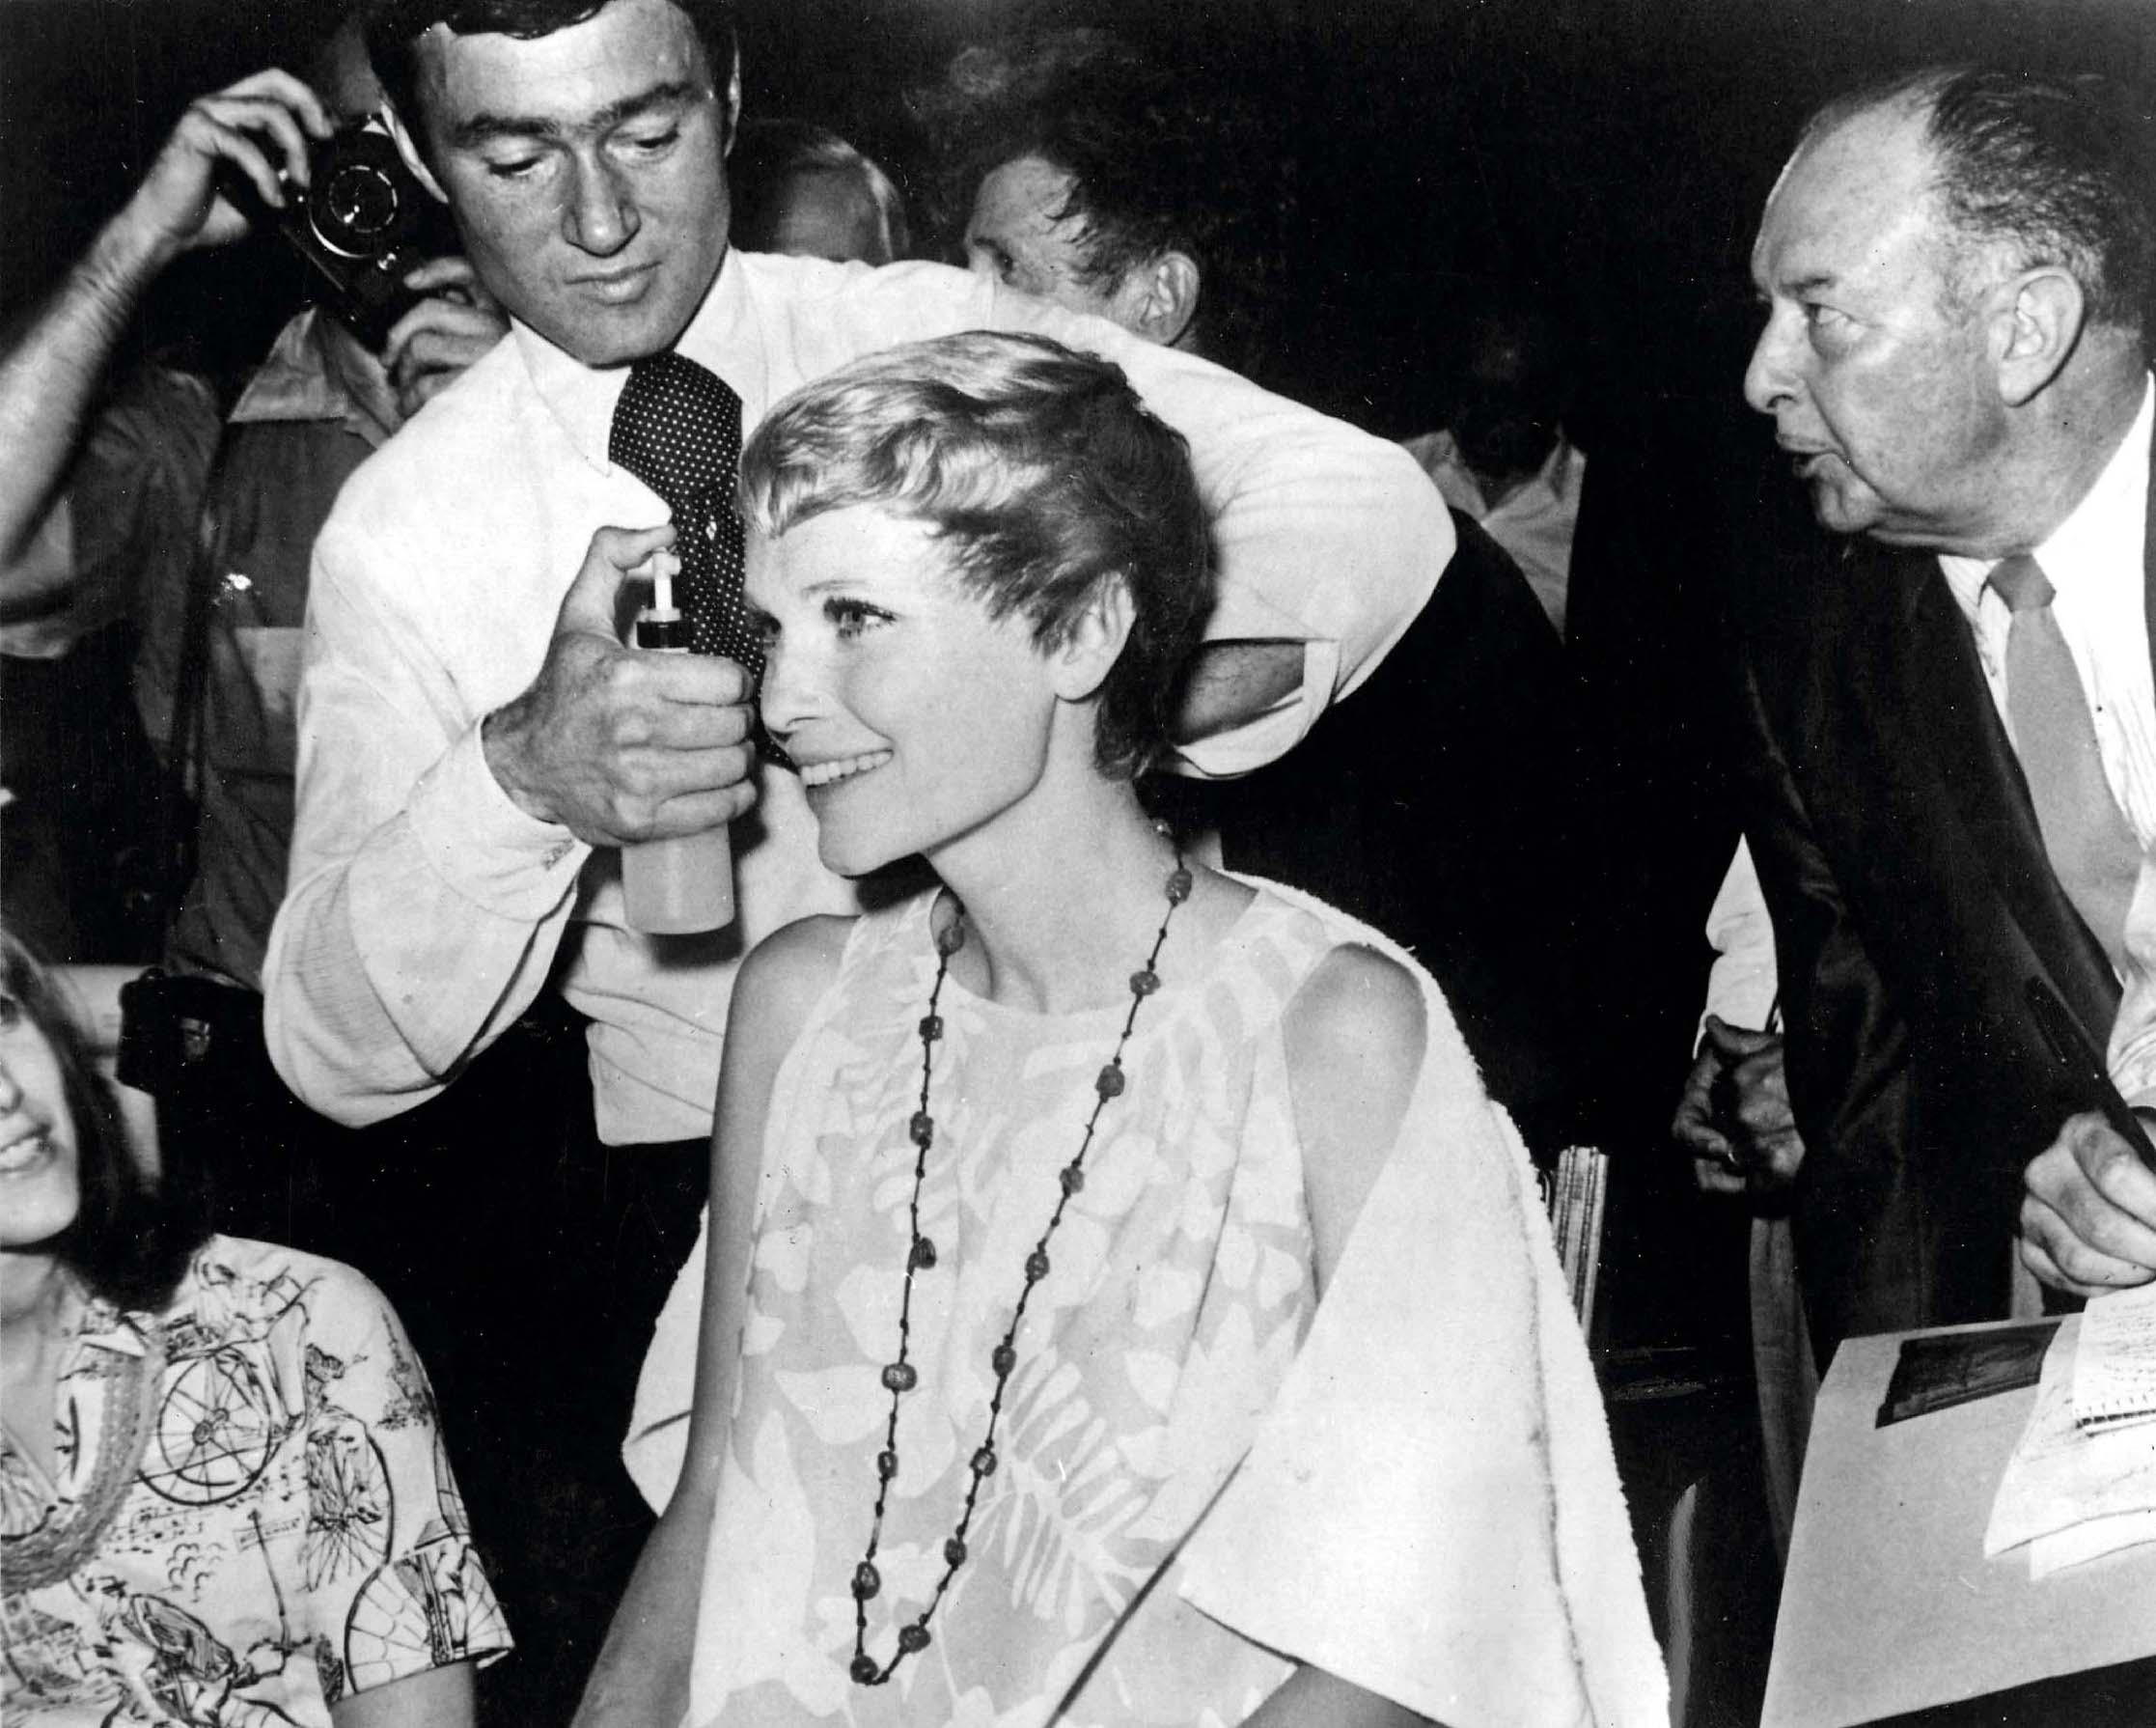 circa 1968:  Actress Mia Farrow being given a £500 haircut by Vidal Sassoon, in preparation for the film 'Rosemary's Baby'.  (Photo by Alan Band/Keystone/Getty Images)